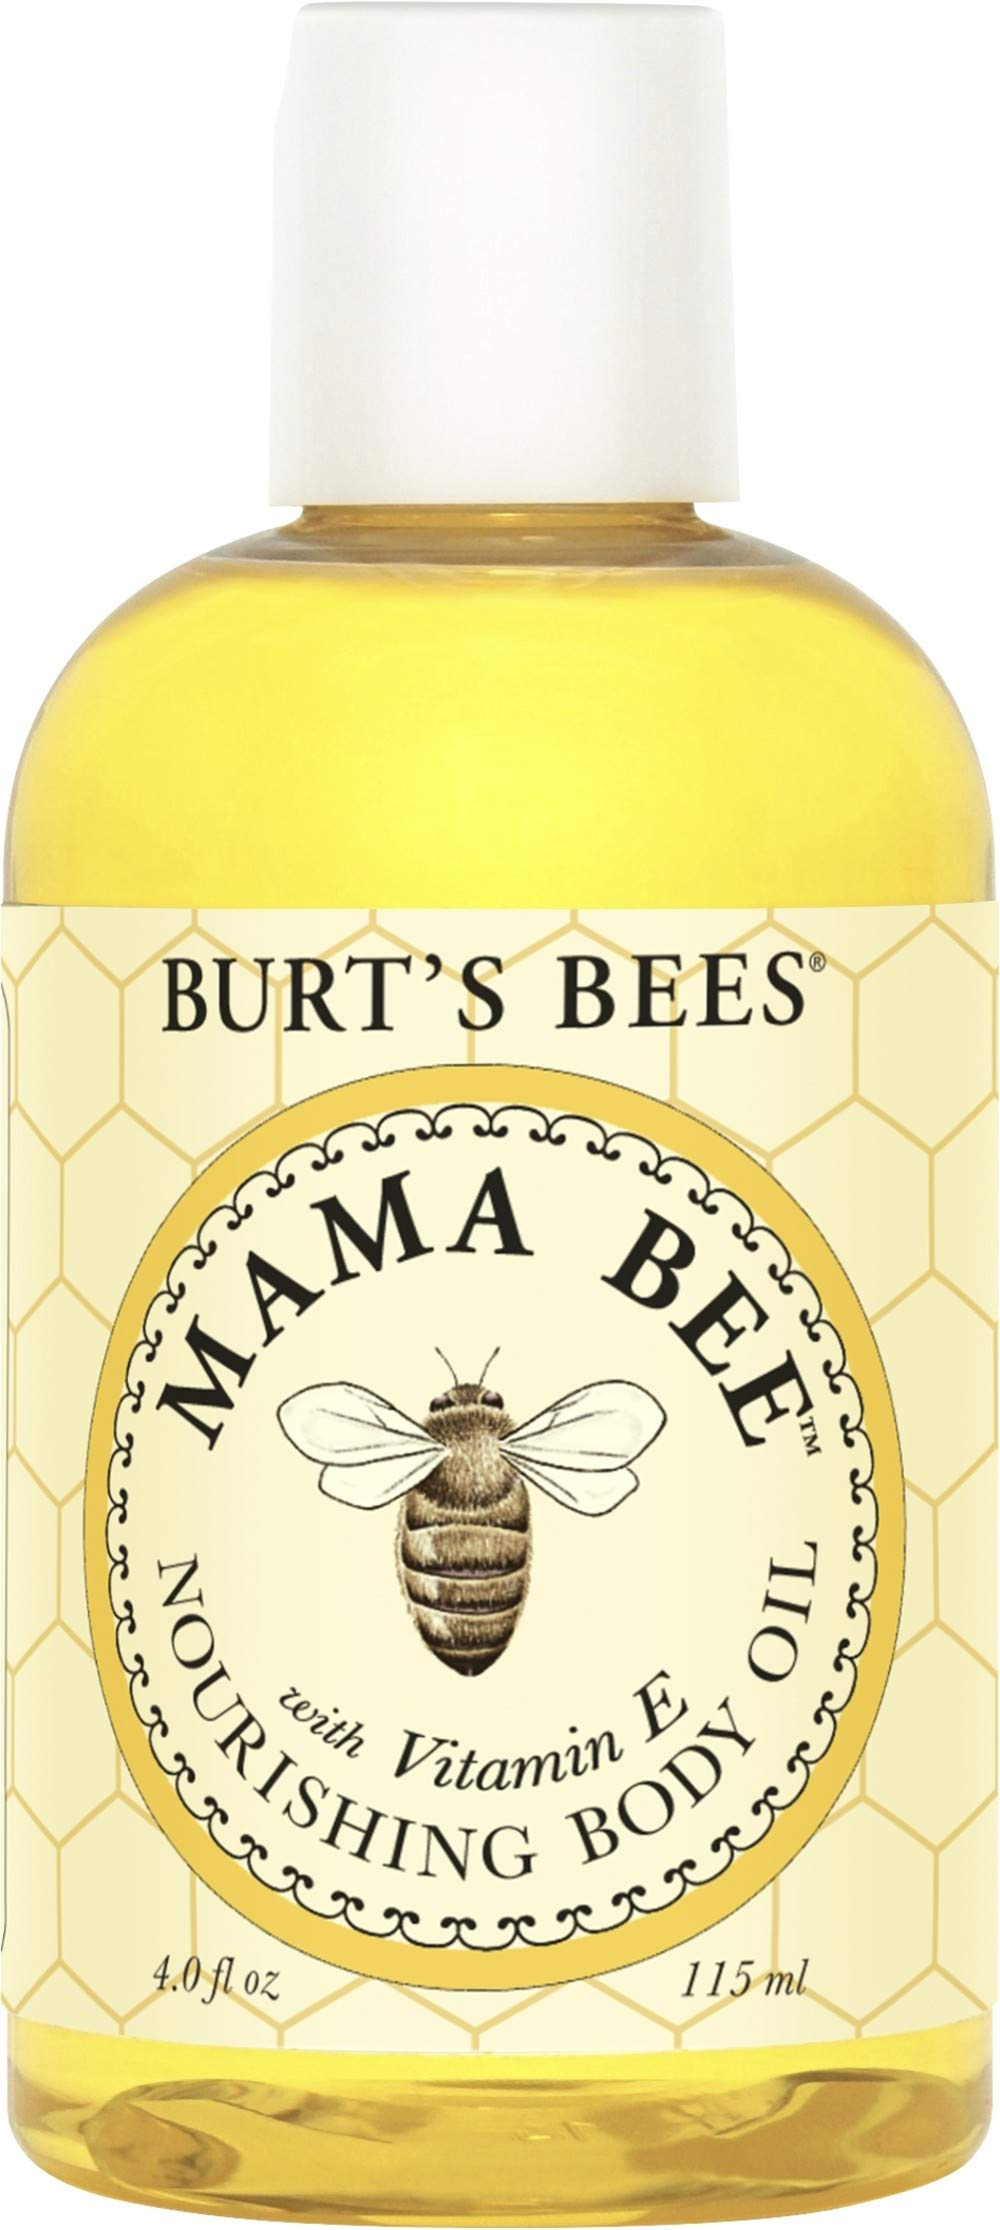 Burt's Bees 100% Natural Mama Bee Nourishing Vitamin E Body Oil, 115 ml